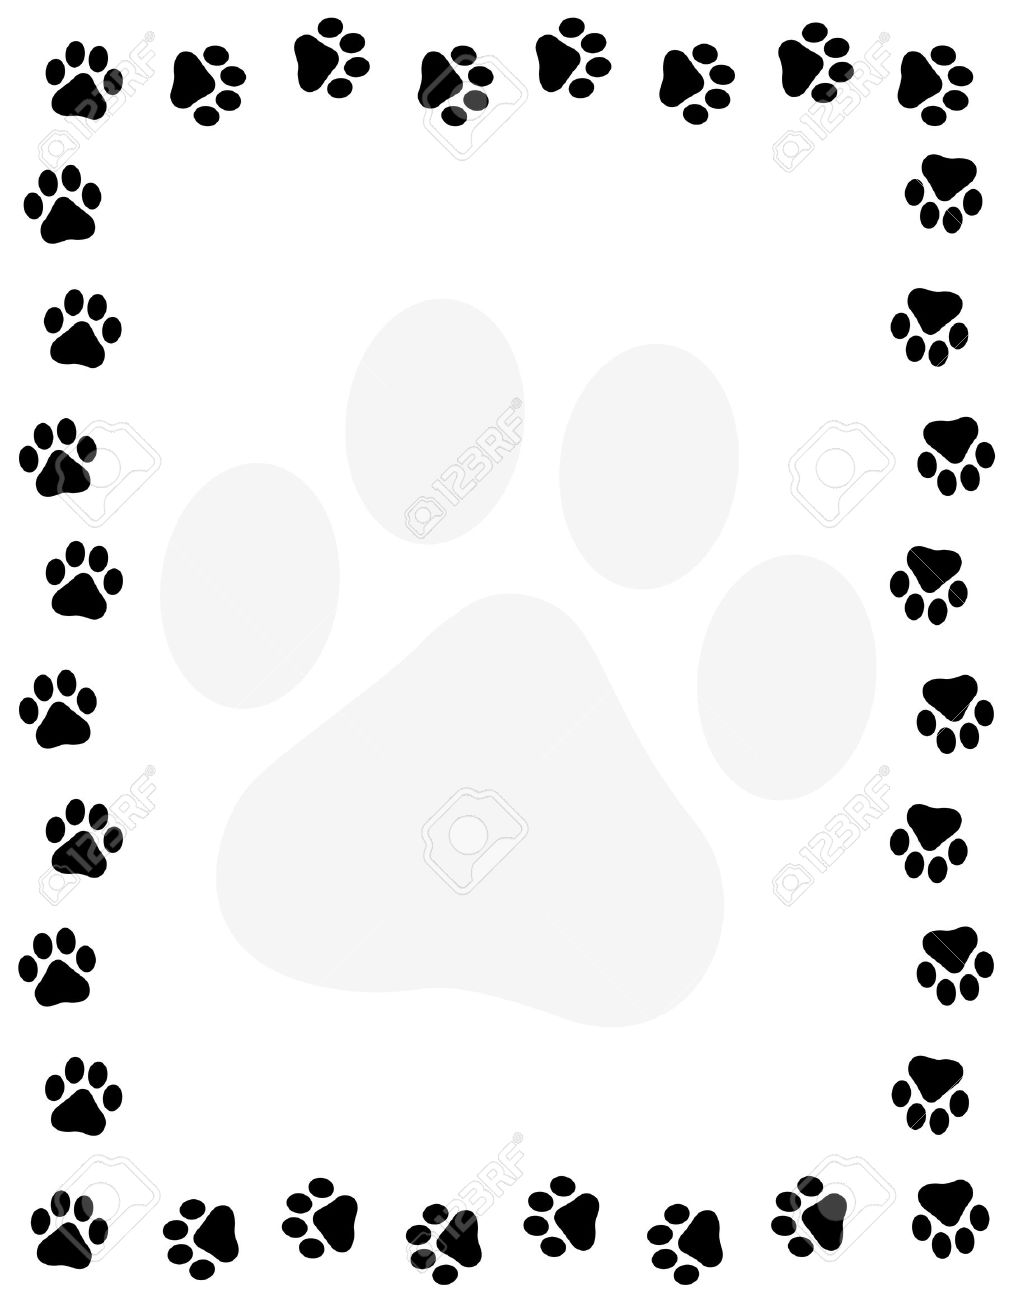 dog pawprint border frame on white background royalty free rh 123rf com paw print page border clipart free cat paw print border clip art